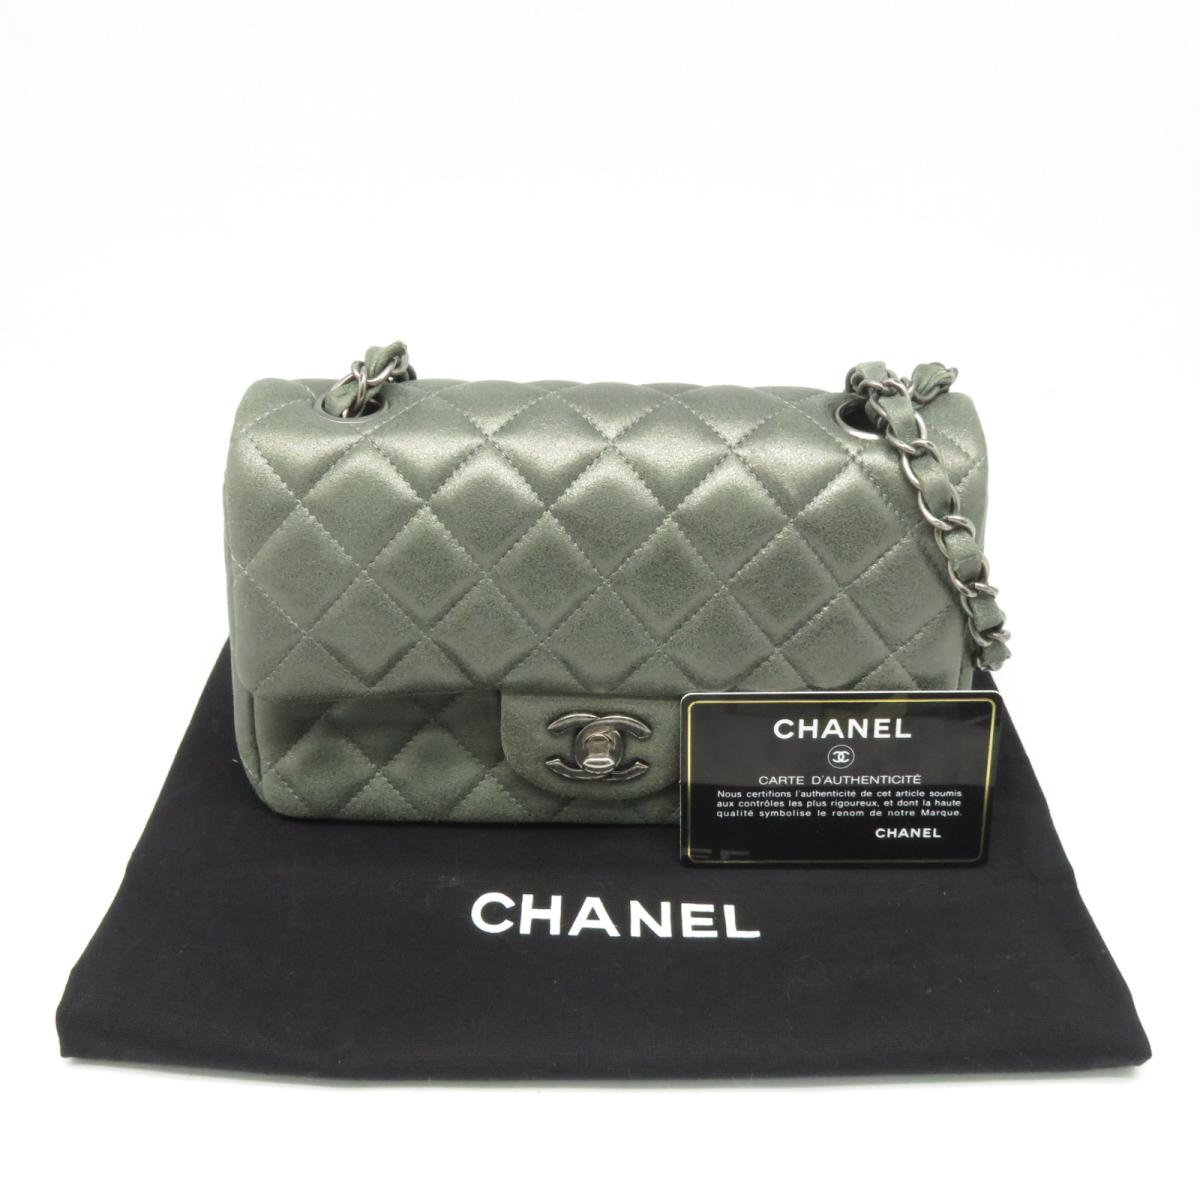 CHANEL Mini grey bag - Iconics Preloved Luxury